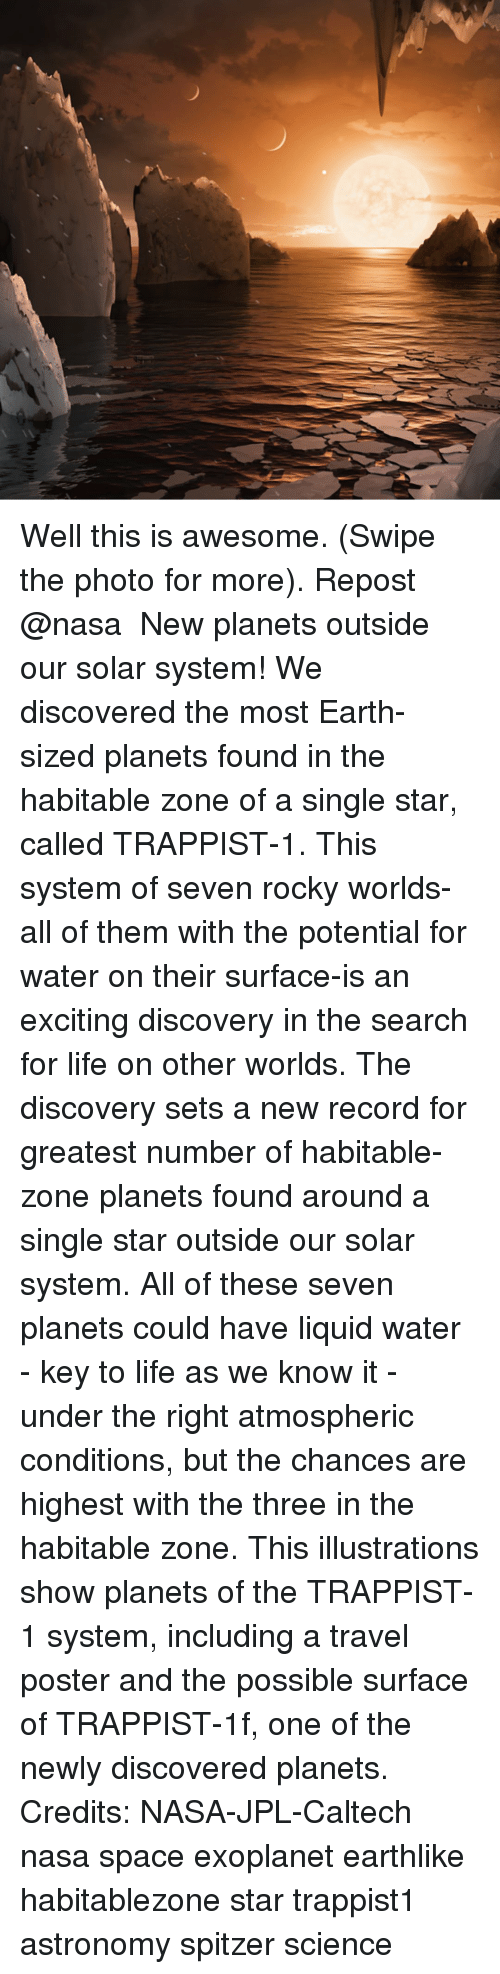 Memes, Nasa, and Rocky: Well this is awesome. (Swipe the photo for more). Repost @nasa ・・・ New planets outside our solar system! We discovered the most Earth-sized planets found in the habitable zone of a single star, called TRAPPIST-1. This system of seven rocky worlds-all of them with the potential for water on their surface-is an exciting discovery in the search for life on other worlds. The discovery sets a new record for greatest number of habitable-zone planets found around a single star outside our solar system. All of these seven planets could have liquid water - key to life as we know it - under the right atmospheric conditions, but the chances are highest with the three in the habitable zone. This illustrations show planets of the TRAPPIST-1 system, including a travel poster and the possible surface of TRAPPIST-1f, one of the newly discovered planets. Credits: NASA-JPL-Caltech nasa space exoplanet earthlike habitablezone star trappist1 astronomy spitzer science